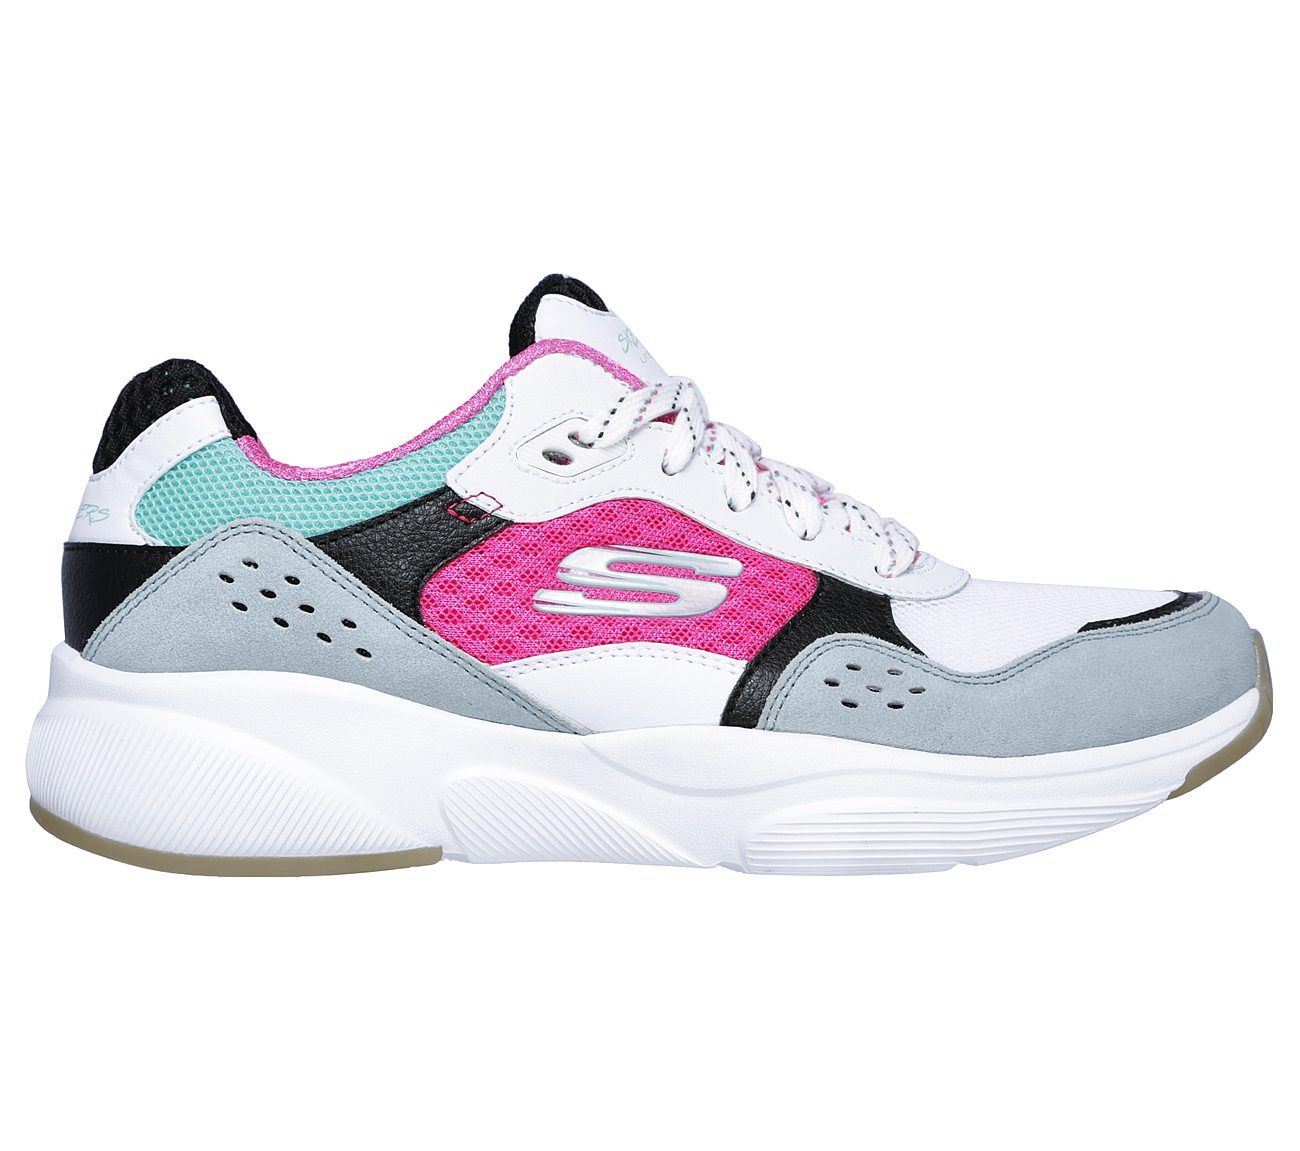 Cerdo Chapoteo tipo  Buy SKECHERS Meridian - Charted SKECHERS Sport Shoes